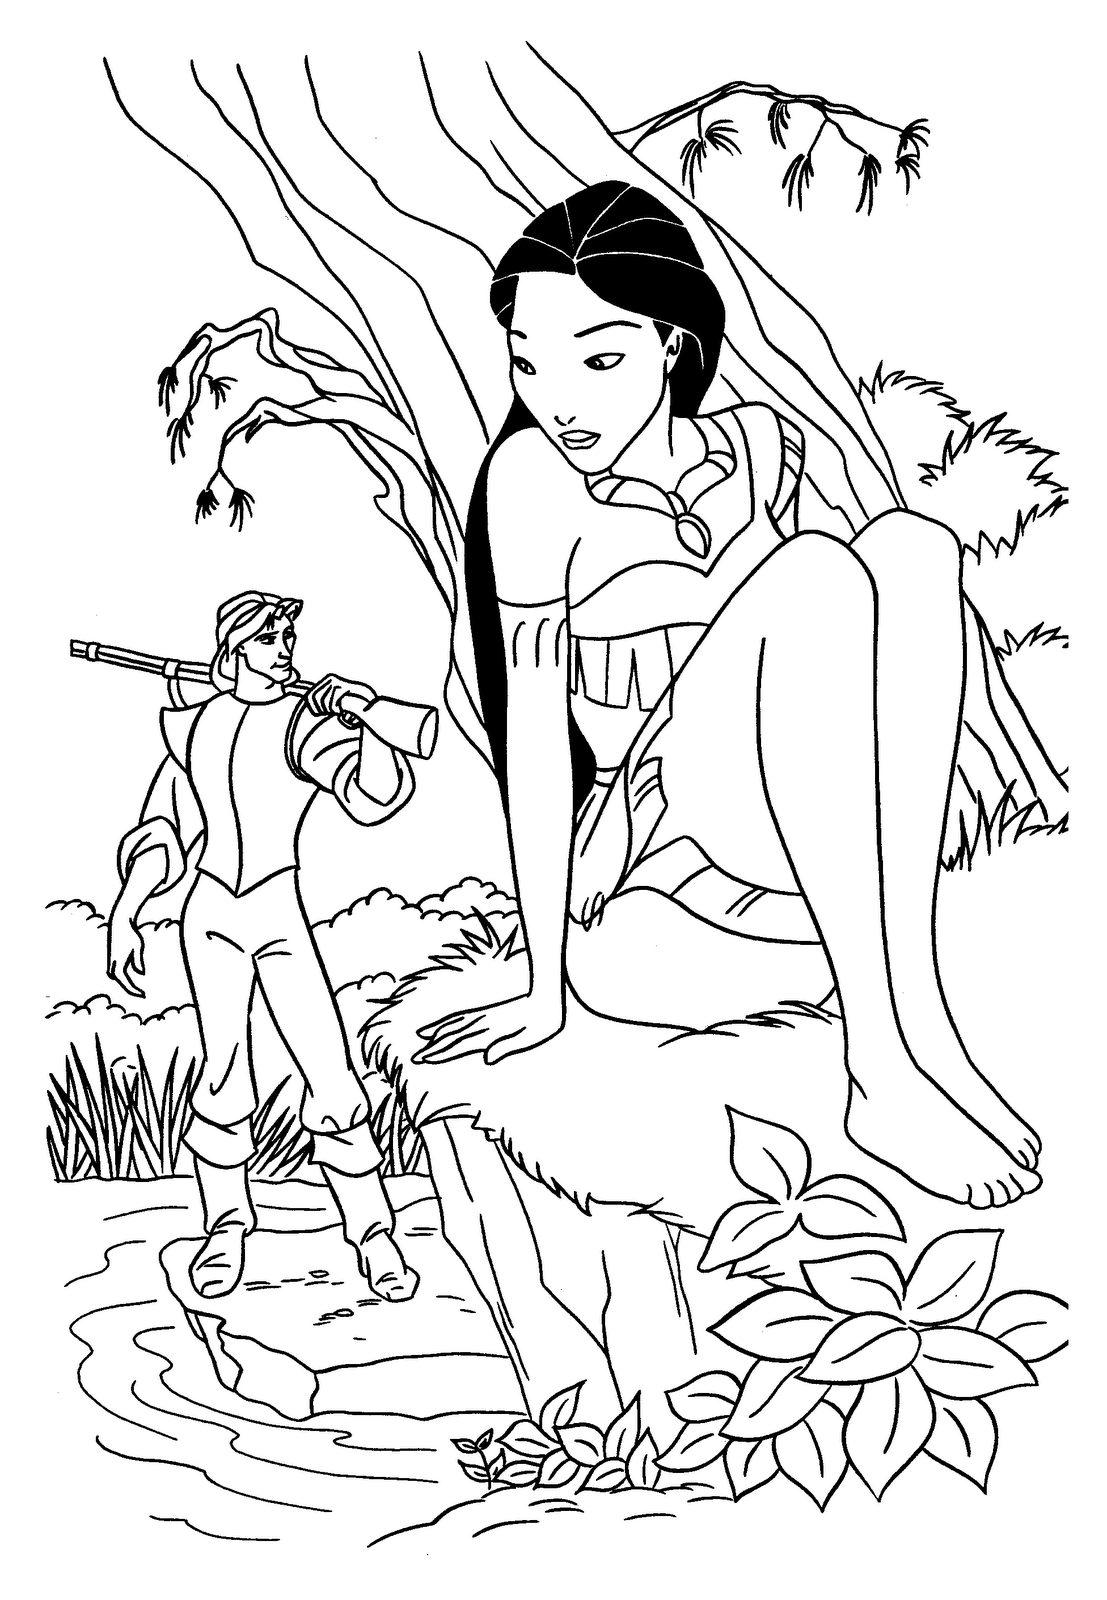 Free coloring pages of disney characters for All disney characters coloring pages